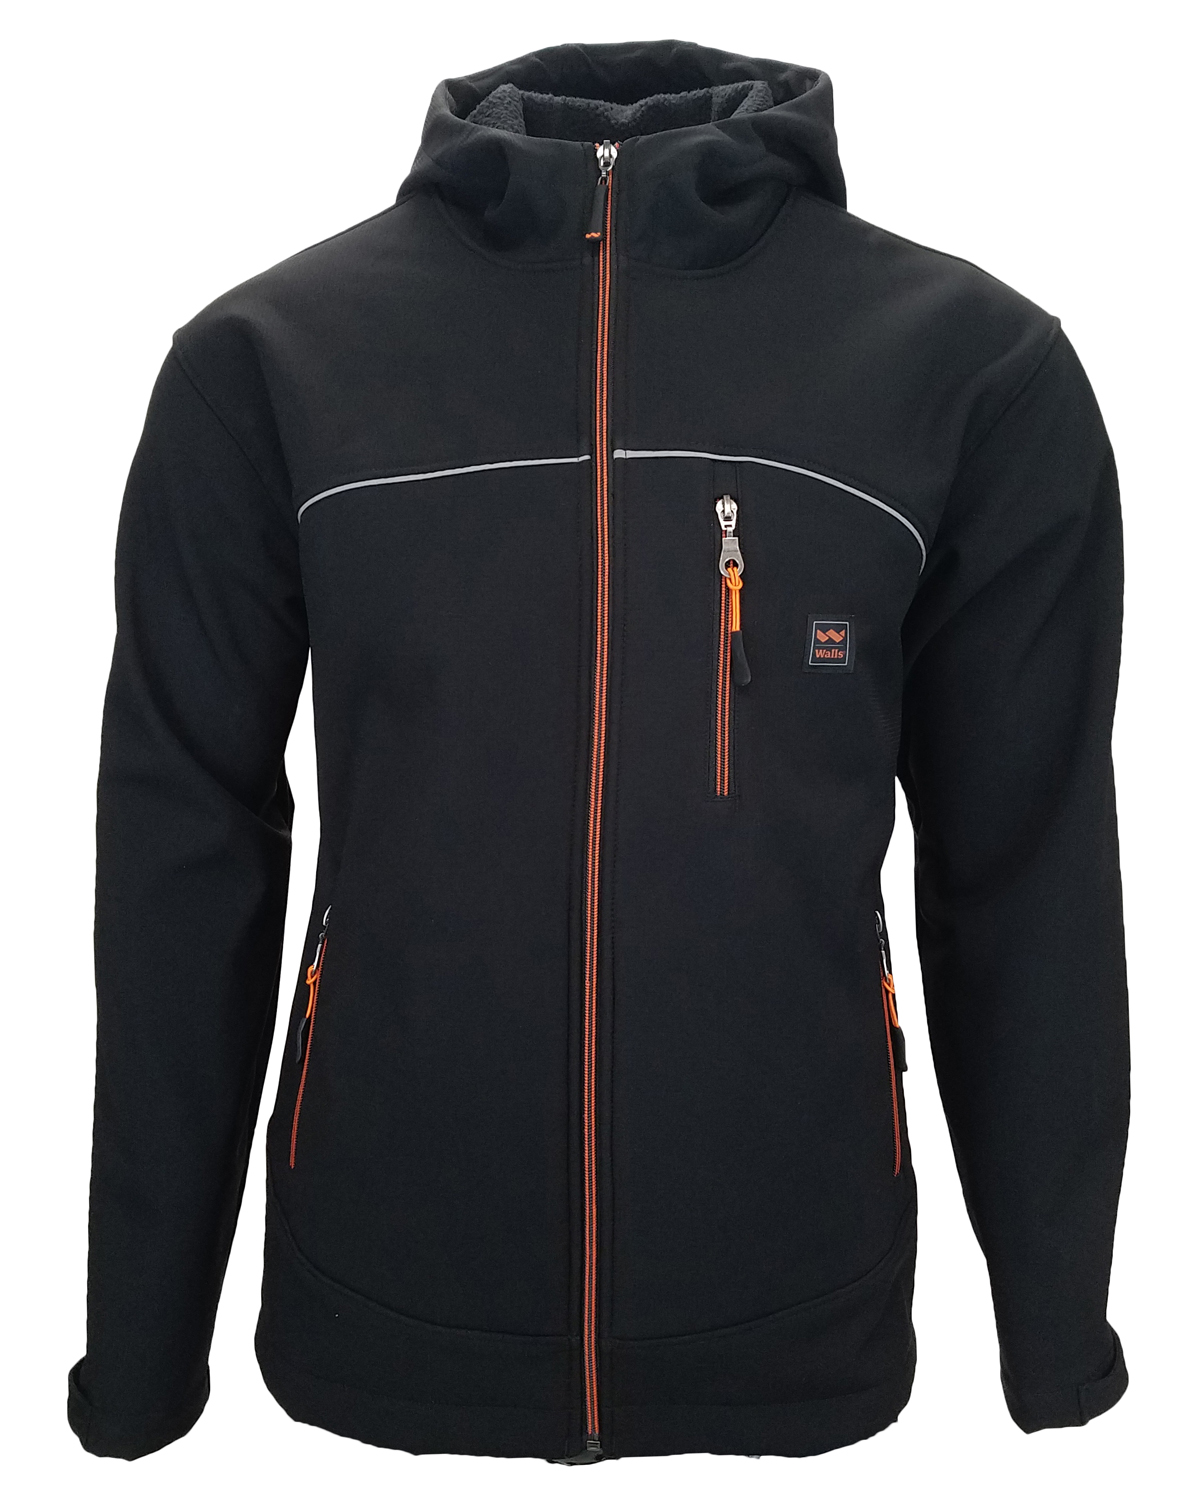 Men's Storm Protector Hooded Solid Soft Shell Jacket